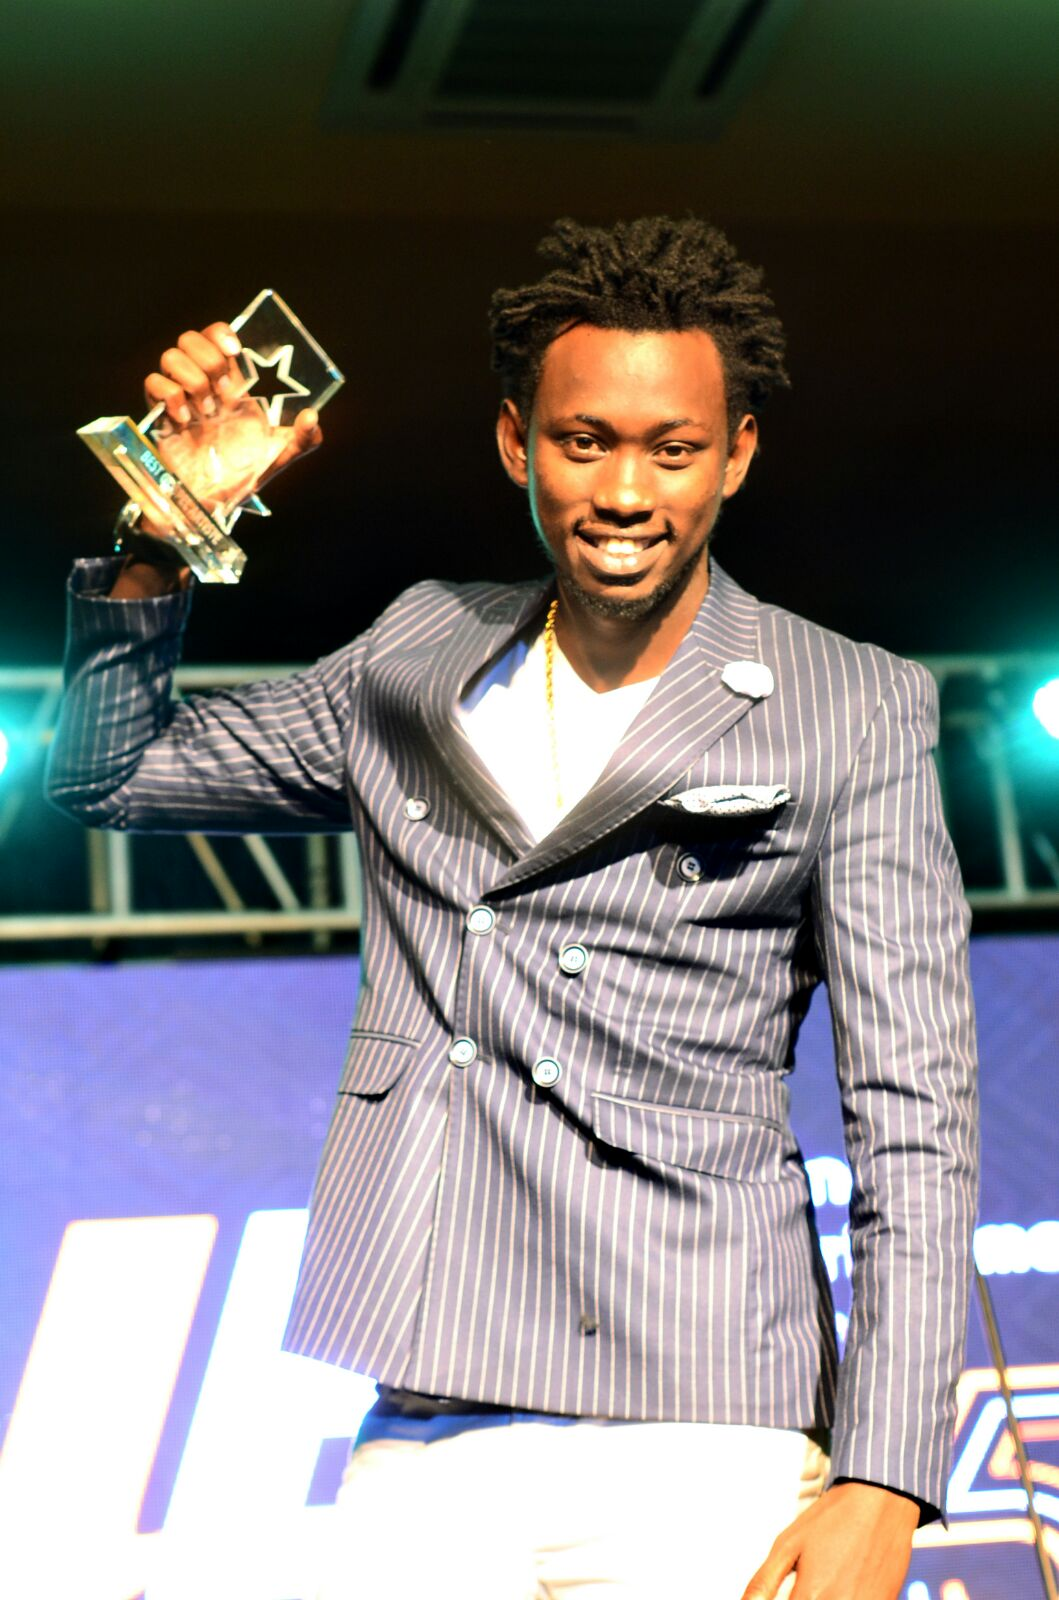 Levixone shows off his award.